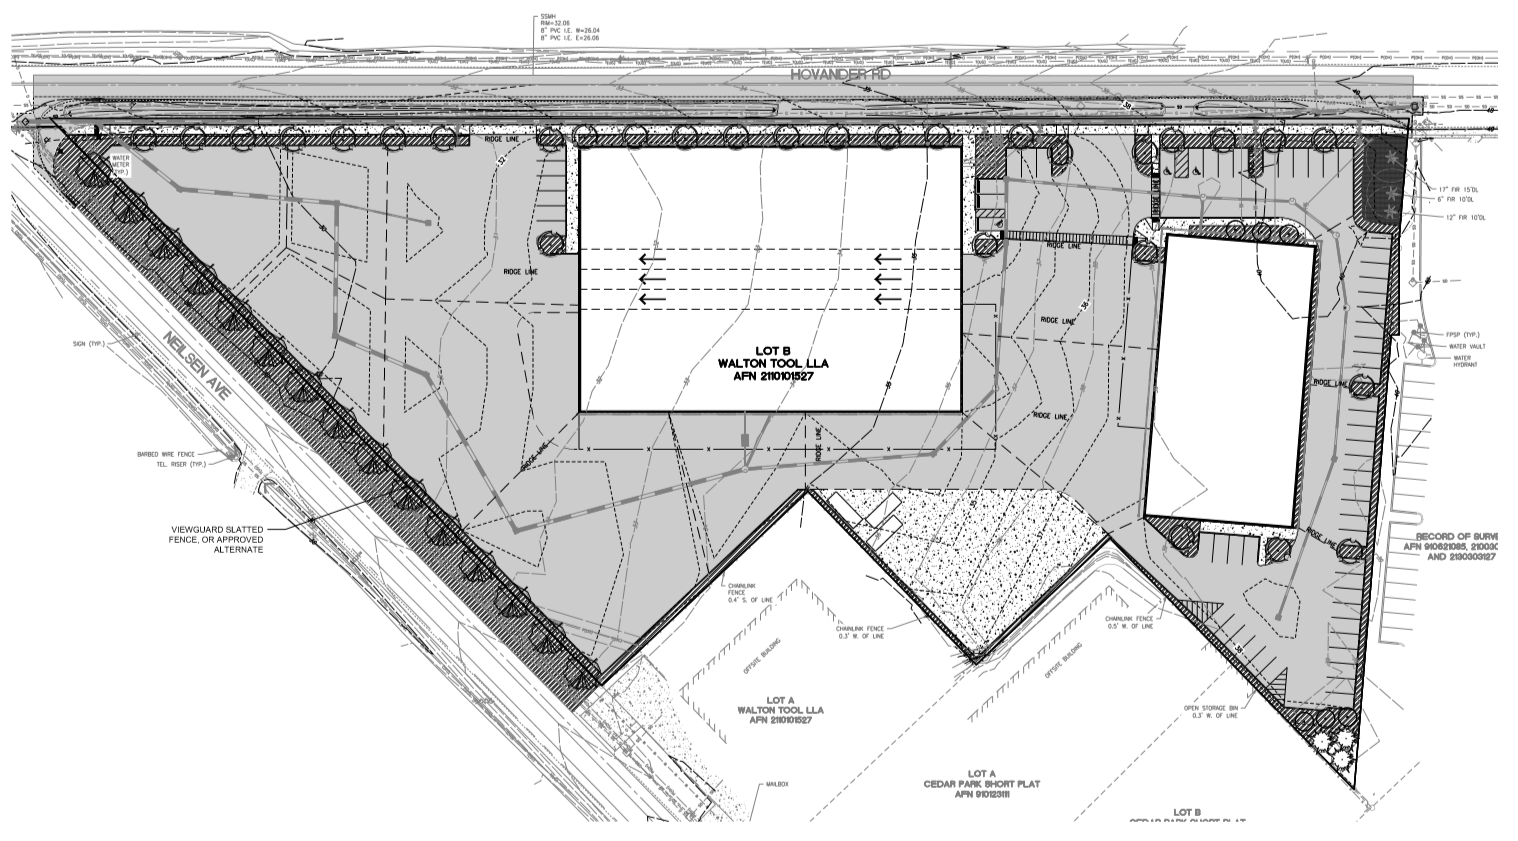 Northwest Fence preliminary landscape plan showing the locations of 2 proposed buildings on the property on the southeast corner of Hovander and Nielsen Roads (June 14, 2018). Source: City of Ferndale